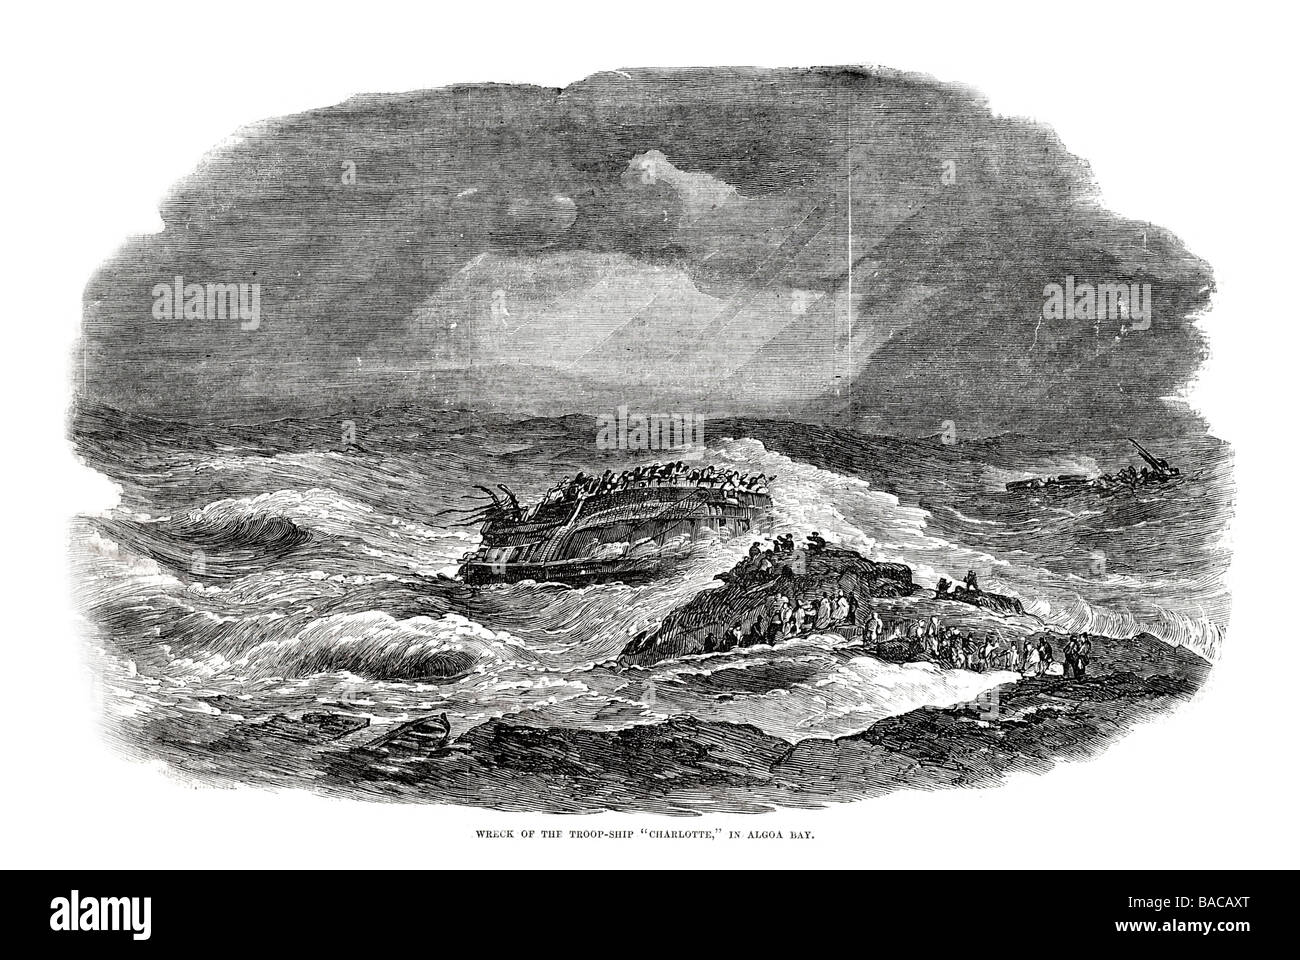 wreck of the troop ship charlotte algoa bay 1854 - Stock Image